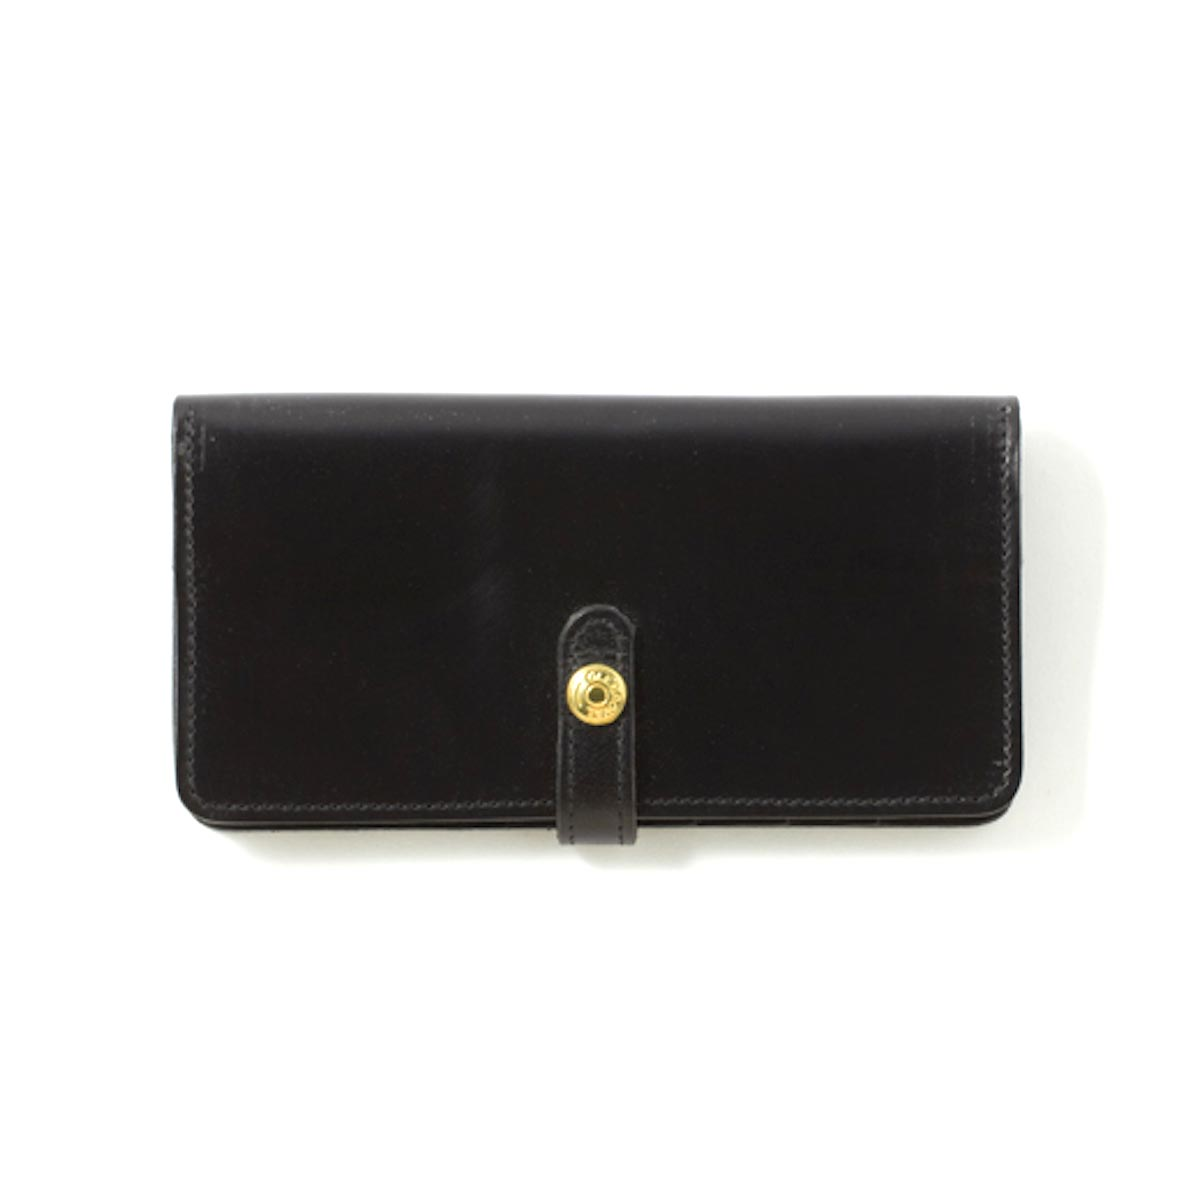 GLEN ROYAL / ROUND LONG PURSE -NEW BLACK